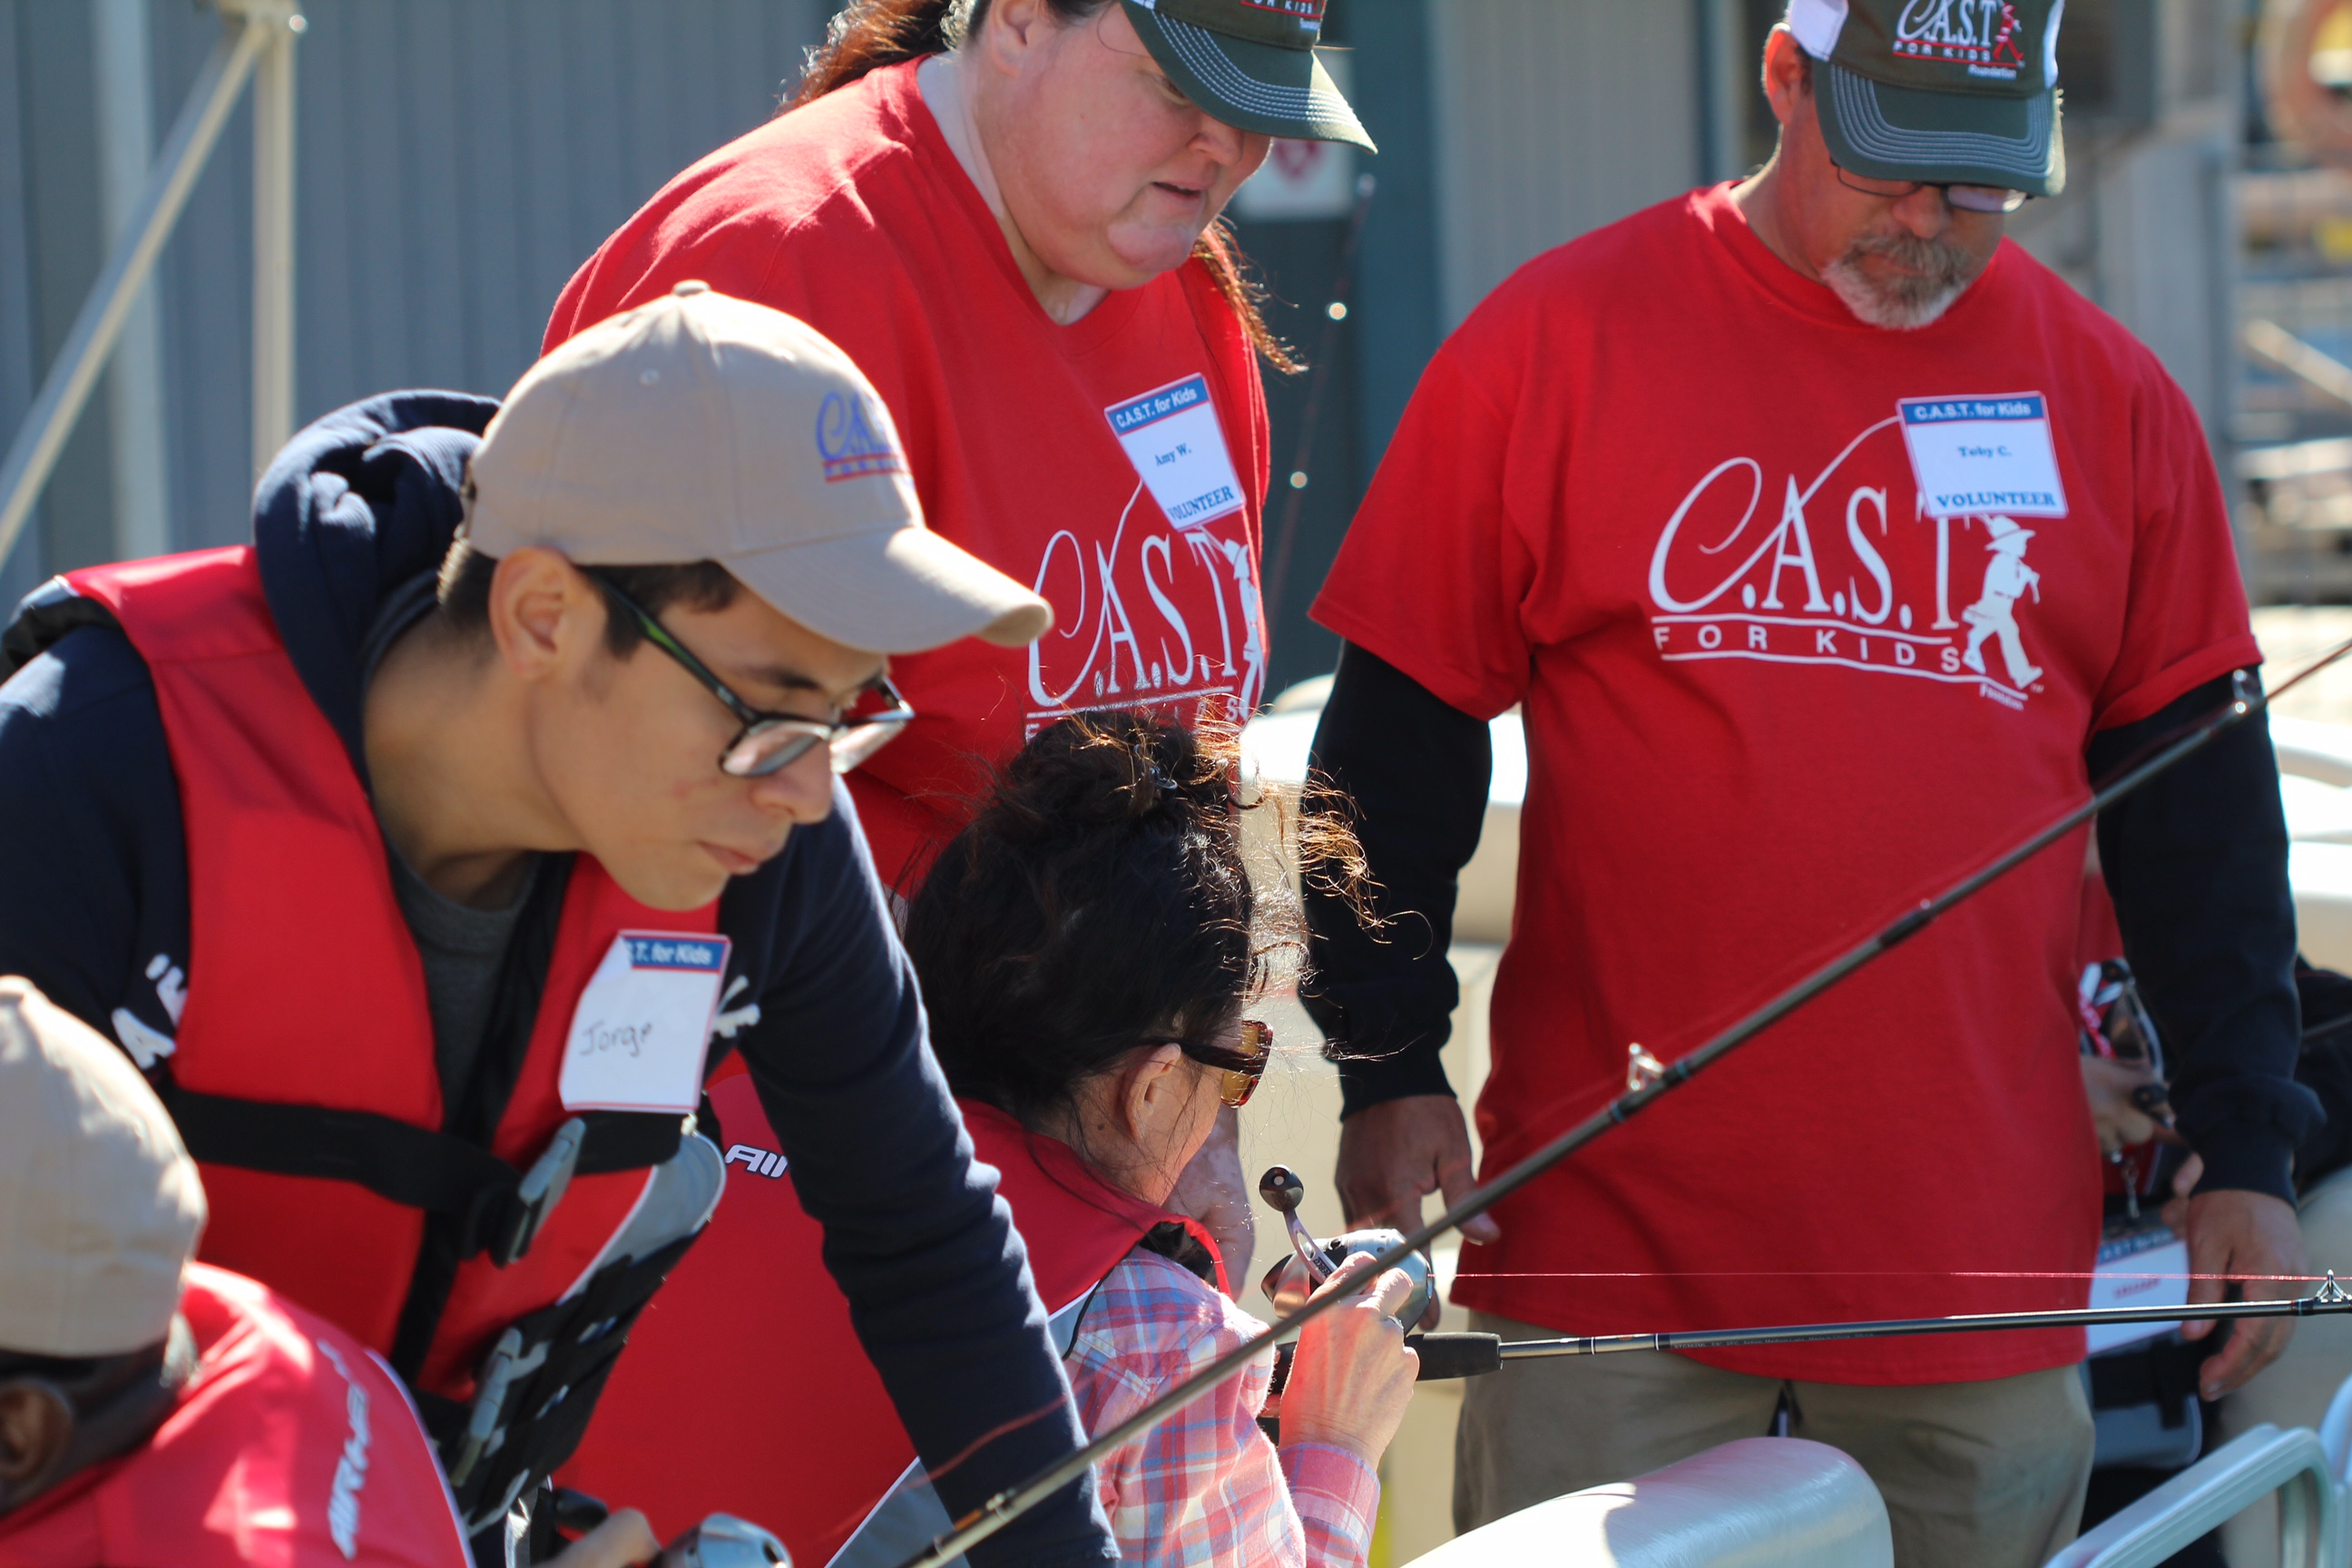 Looking for fish at the C.A.S.T. for Kids event at Lake Mead.